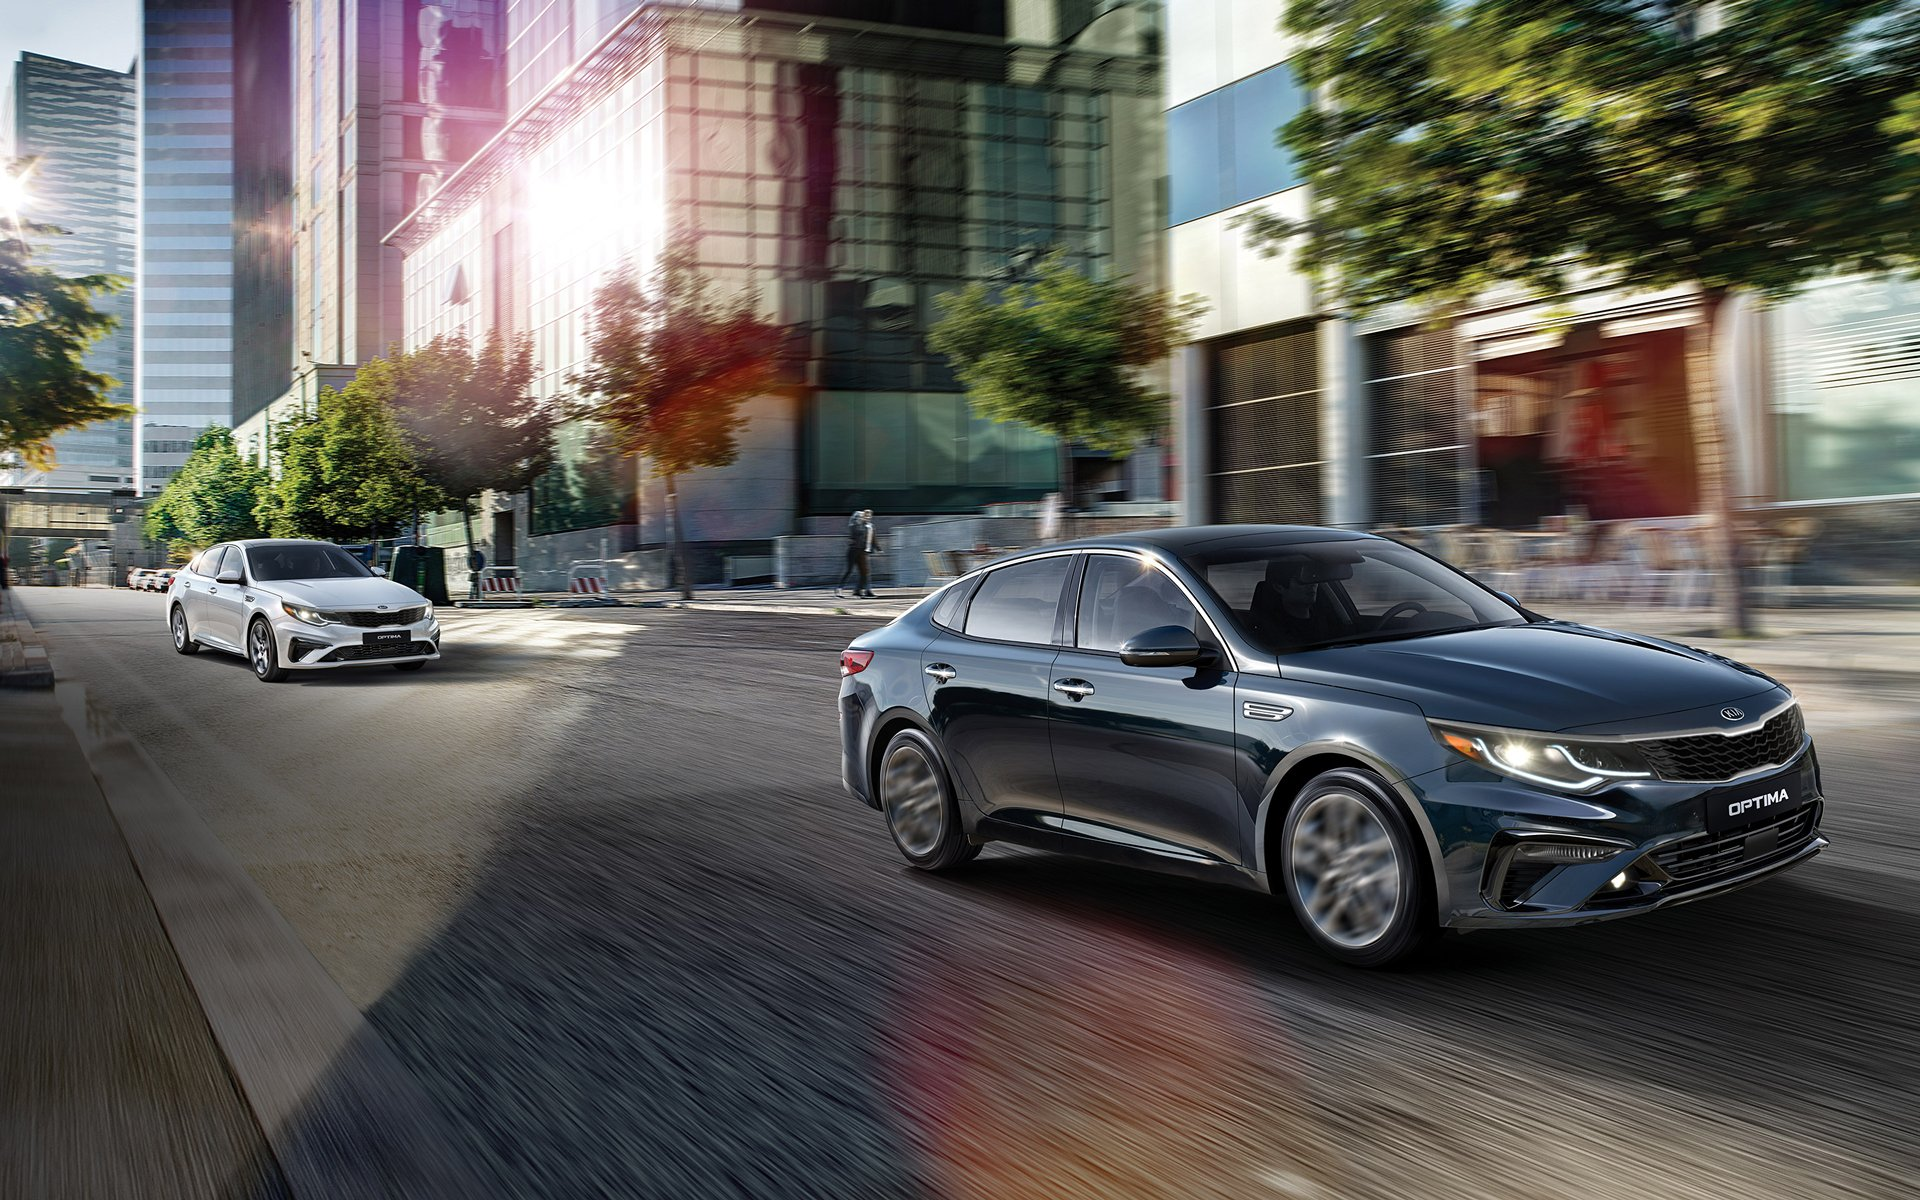 New 2019 Kia Optima So Smart.